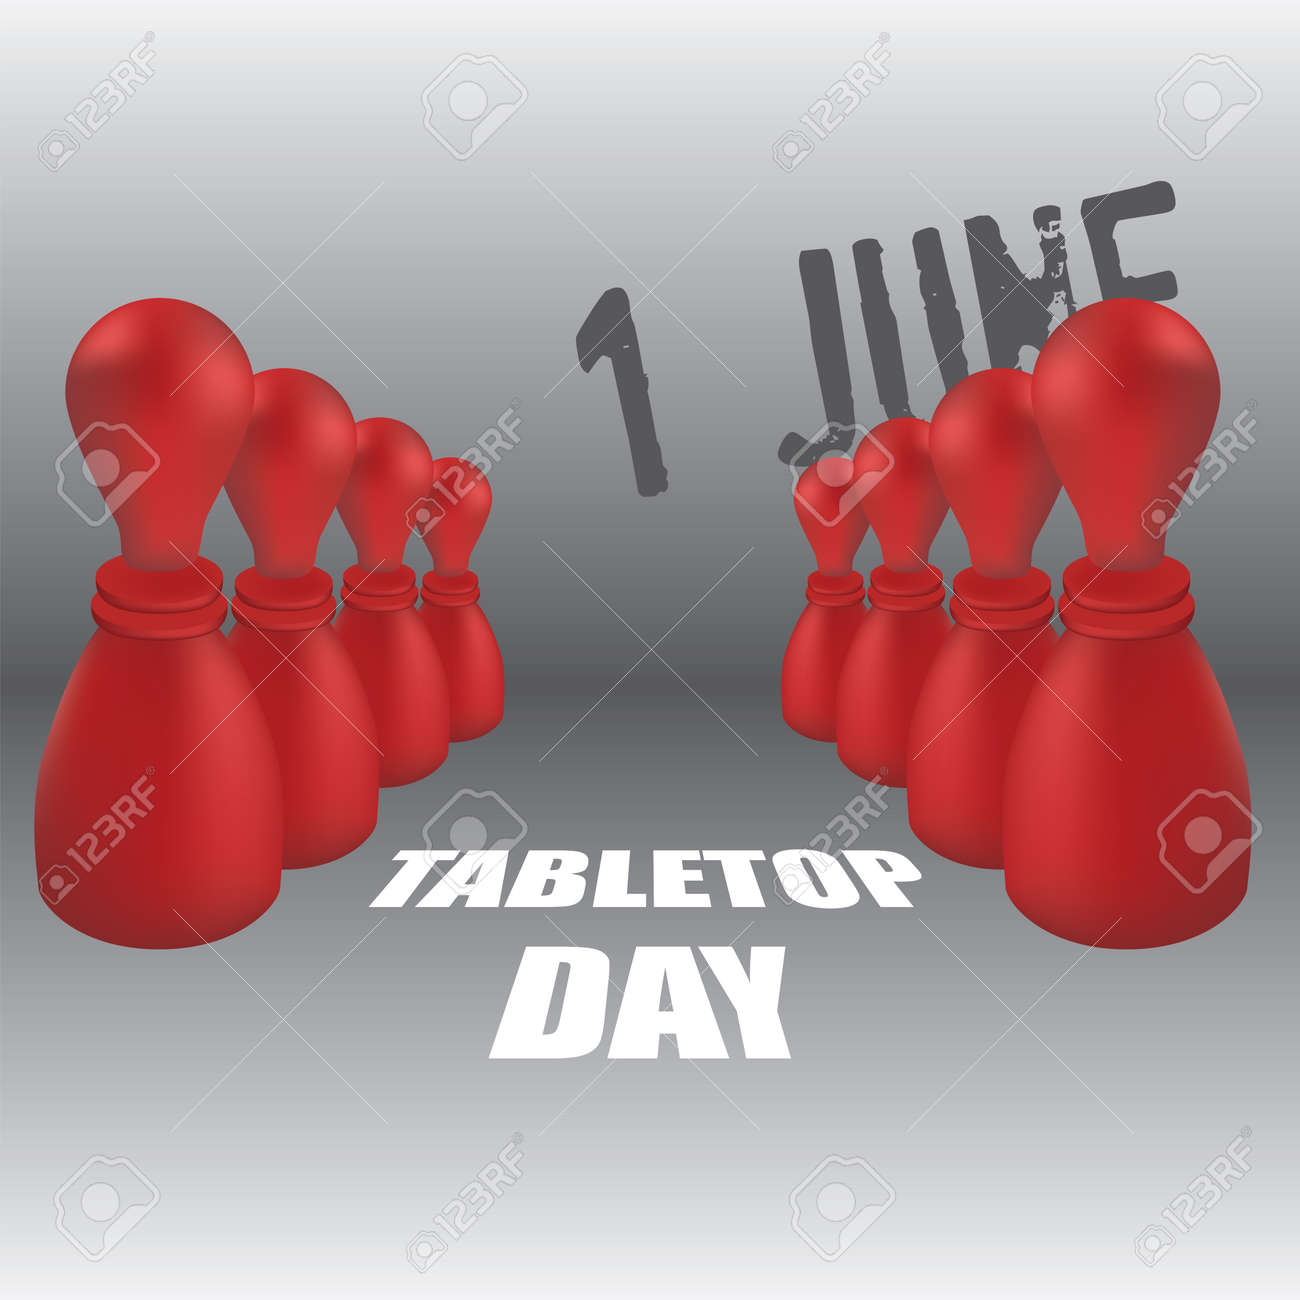 The calendar event is celebrated in june - TableTop Day - 169442154